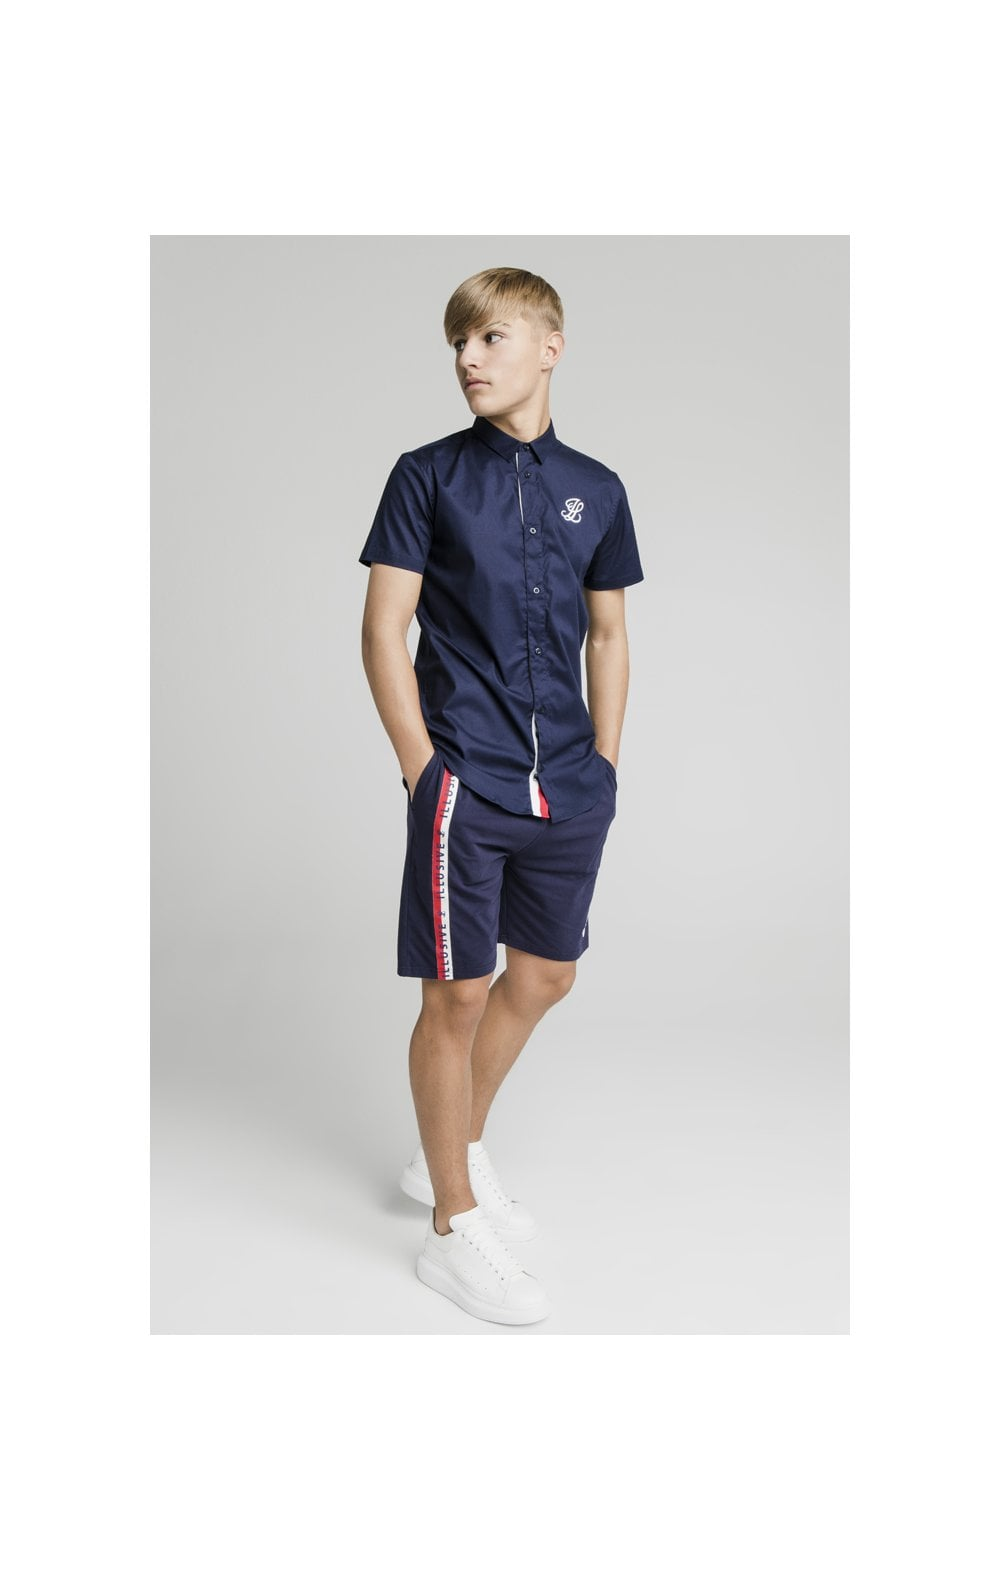 Illusive London Side Tape Jersey Shorts - Navy (5)